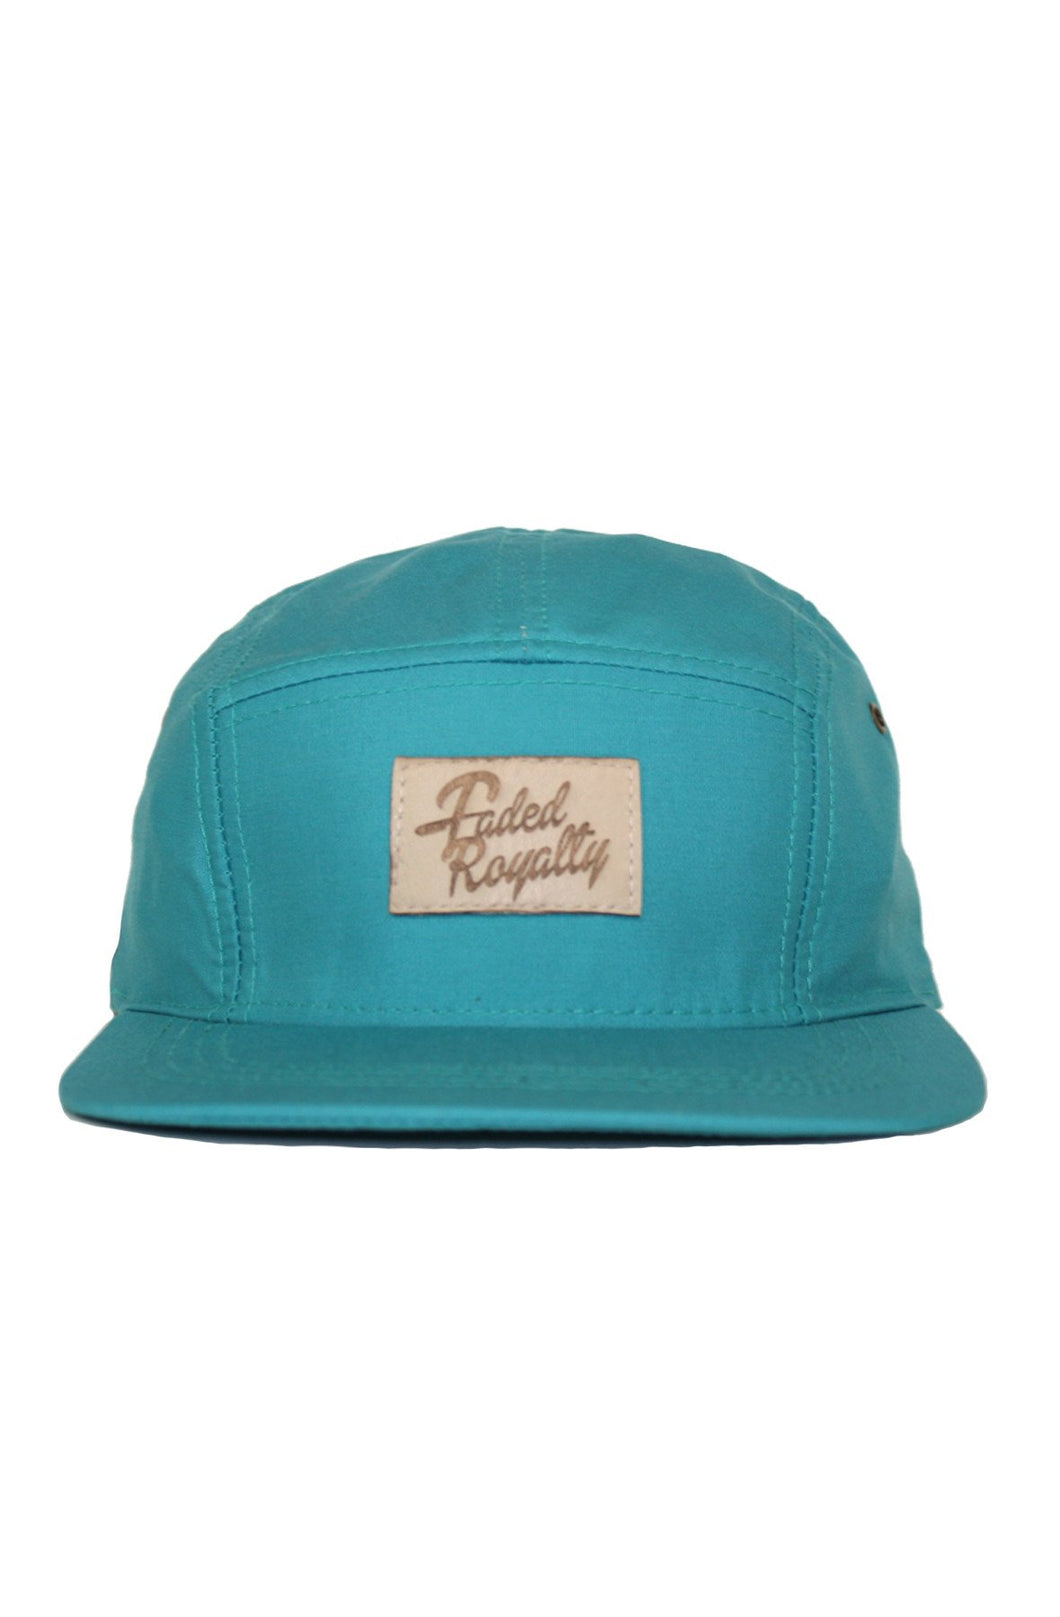 TEAL LEATHER 5 PANEL